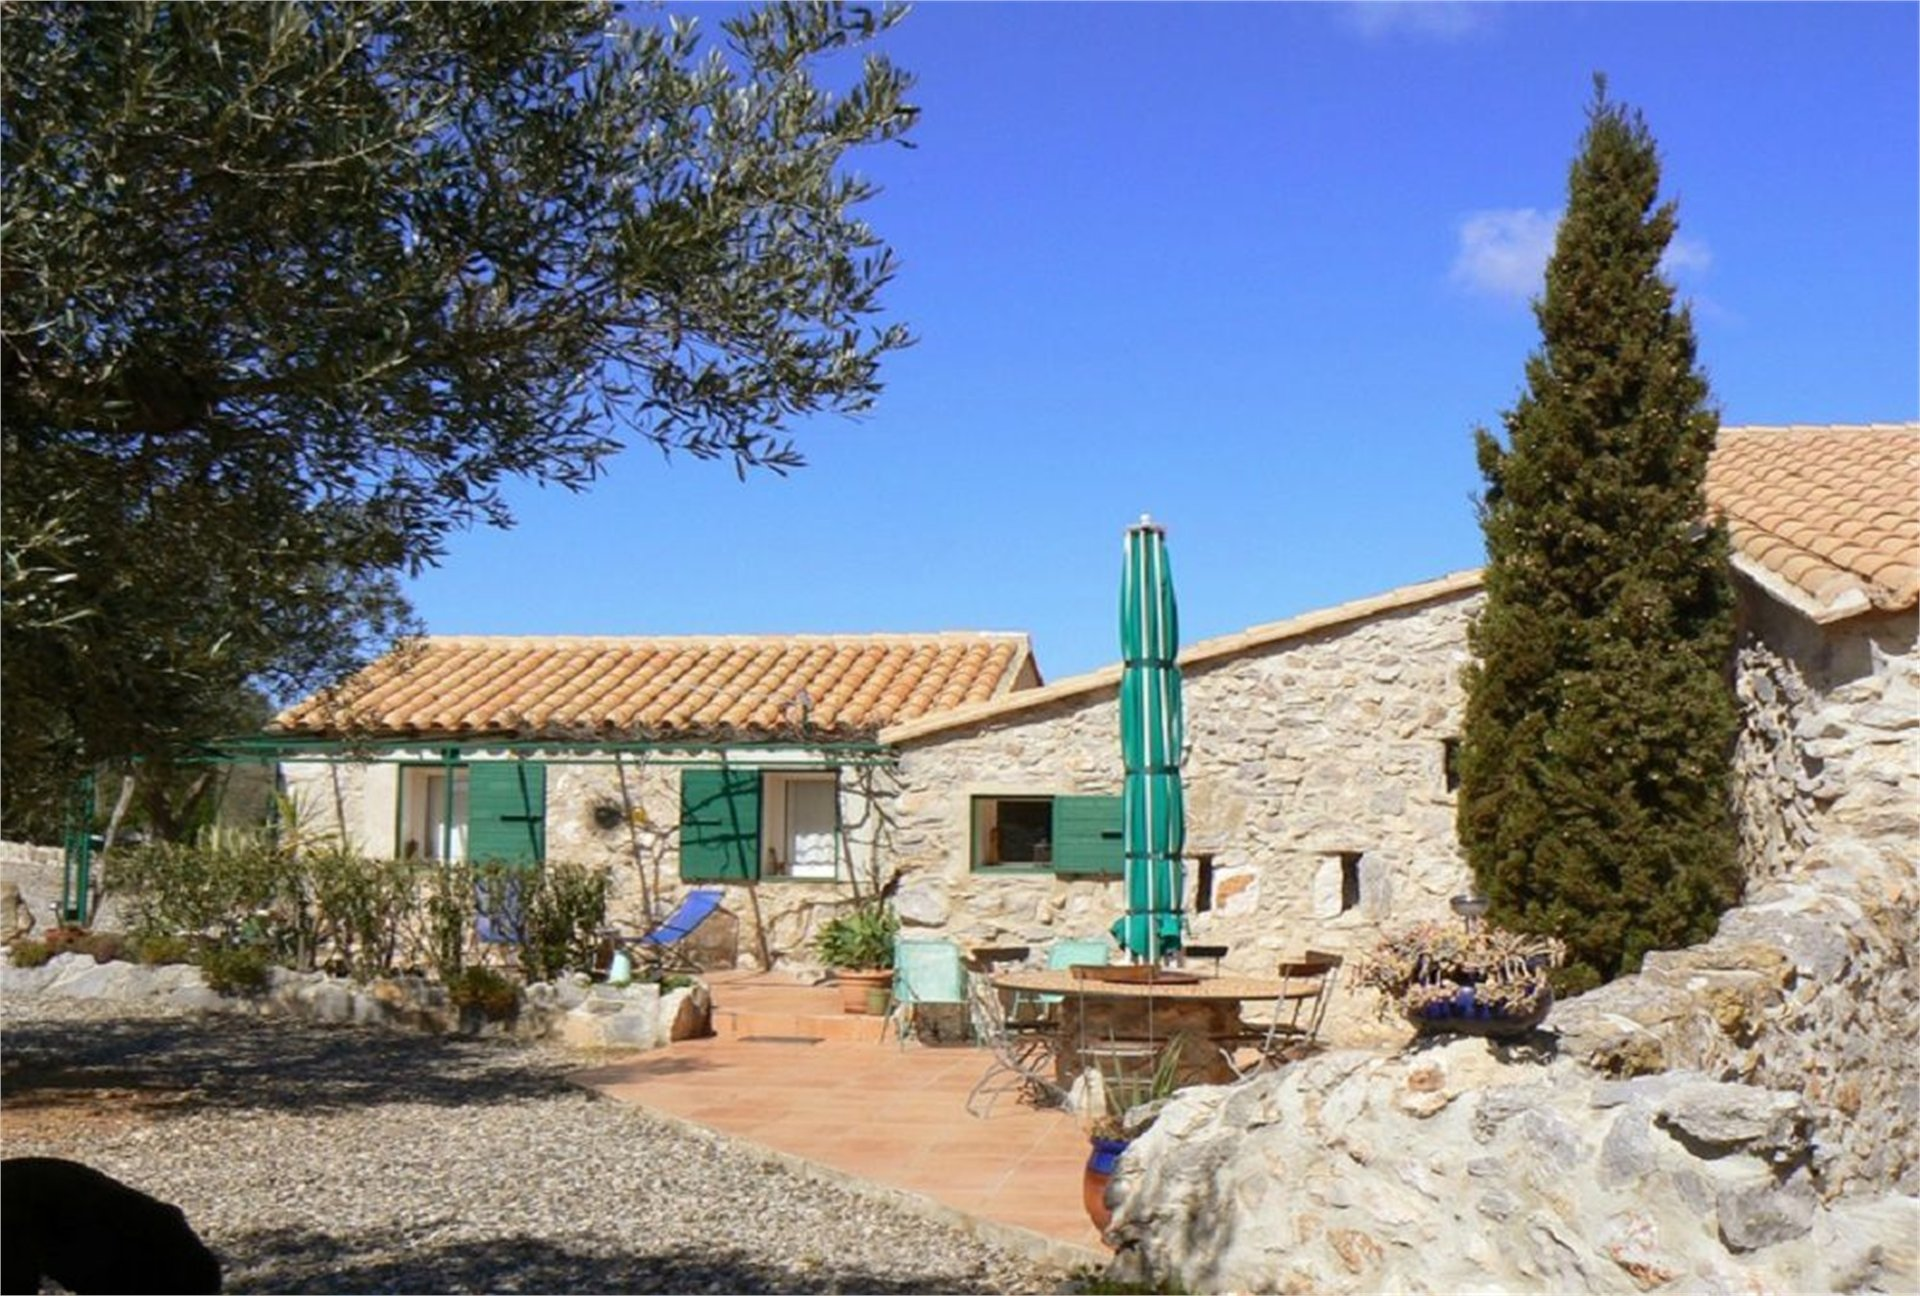 AUTHENTIC CATALAN FARMHOUSE WITH GITE - 5HA OF LAND, CORBIERES